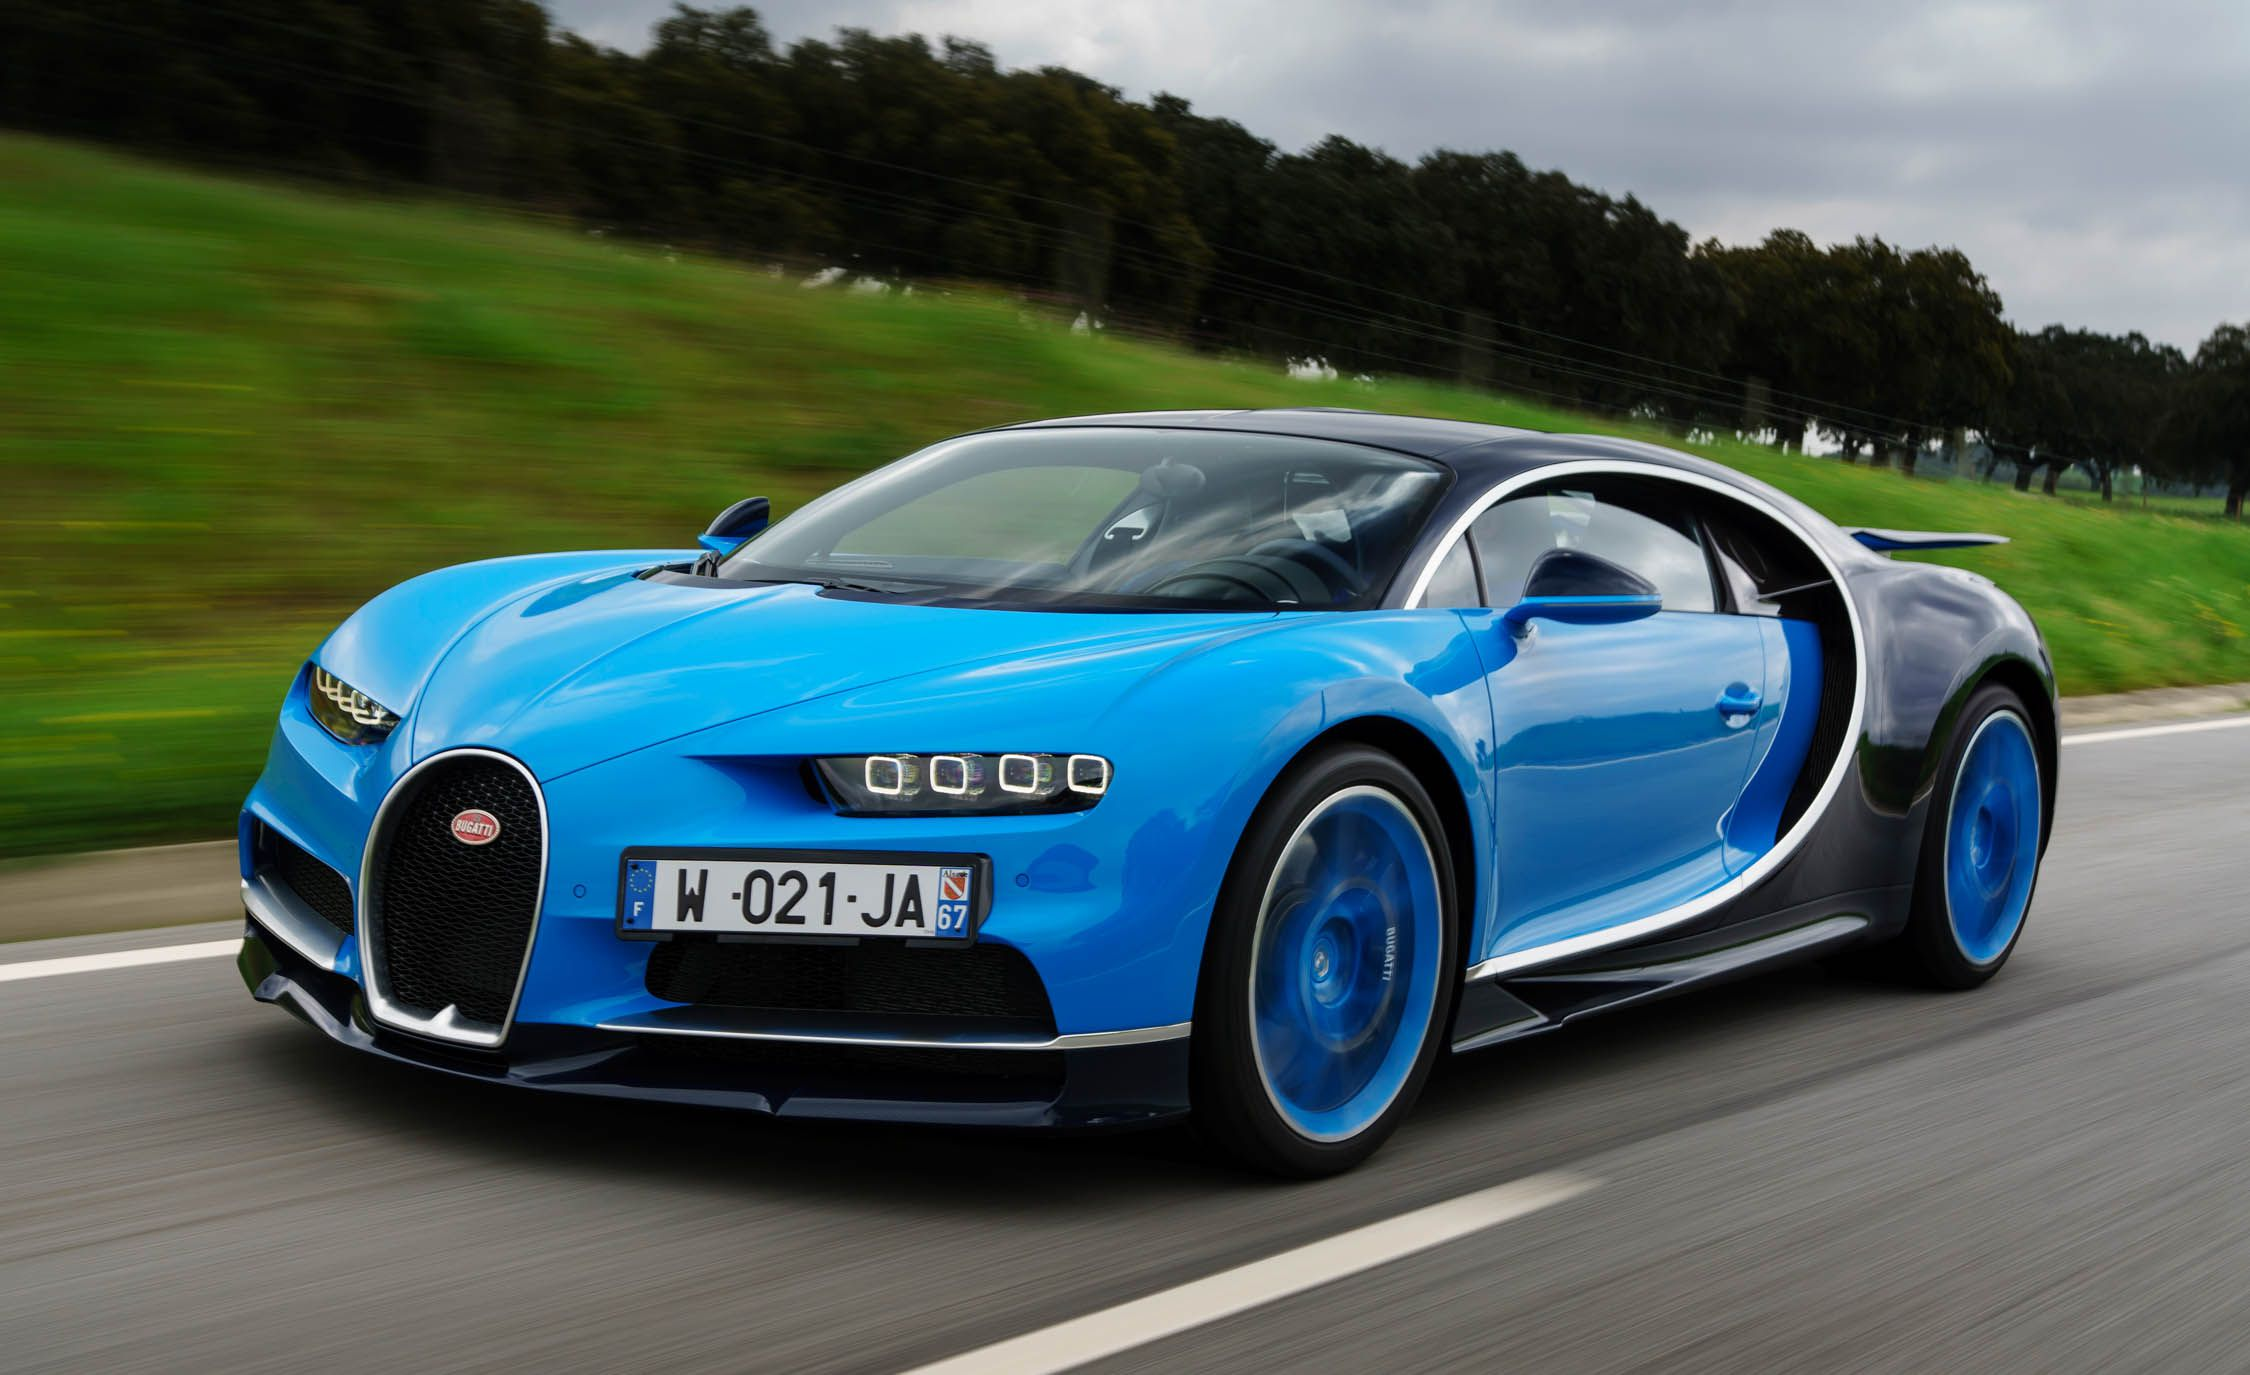 Bugatti Chiron is one of the most expensive cars in Bugatti history